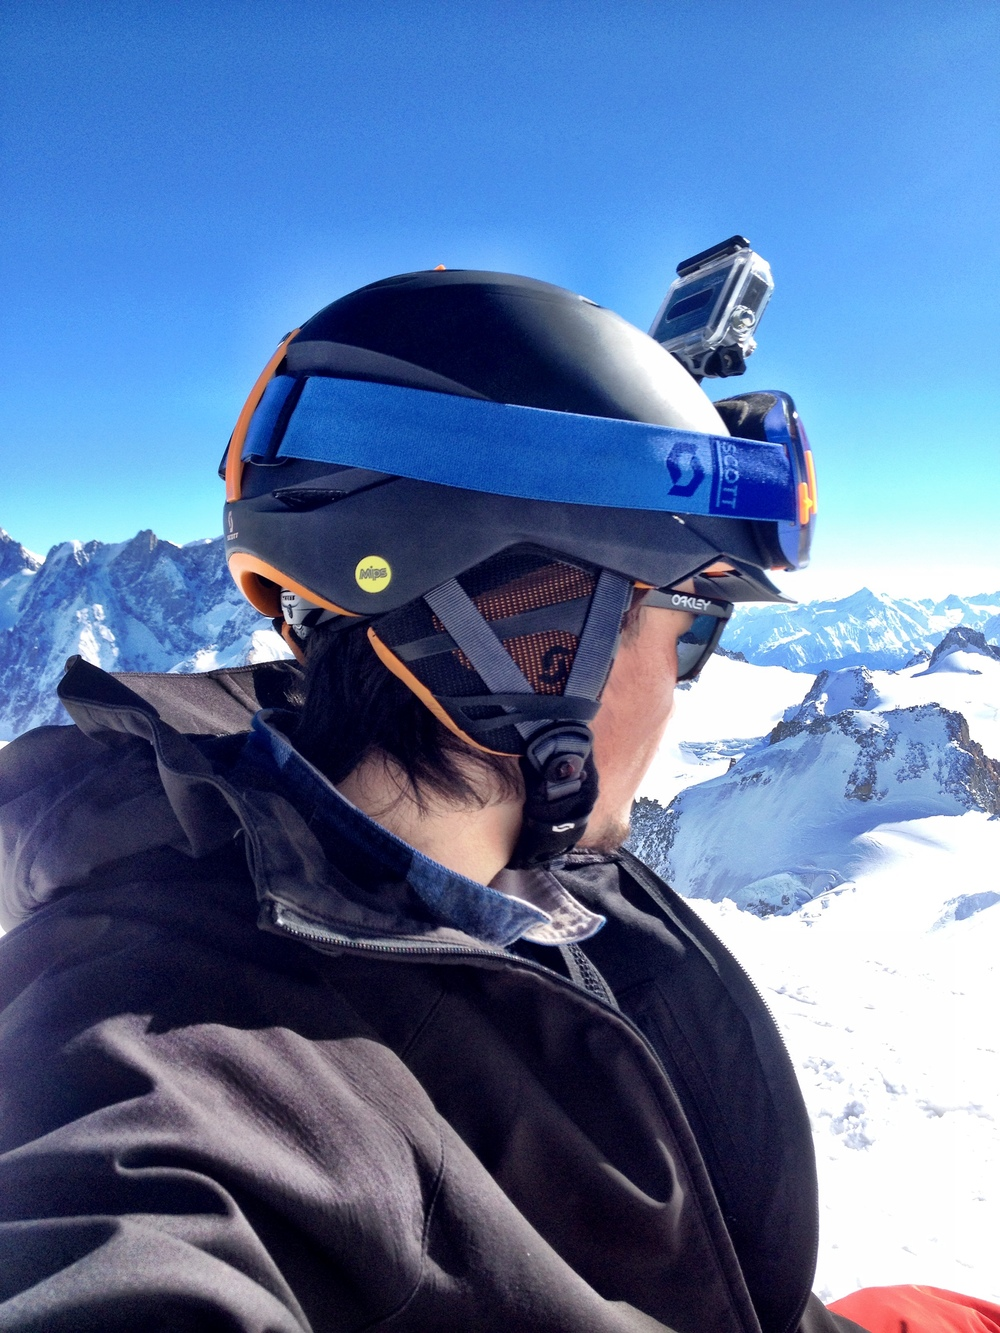 Victor from jacknife testing helmet side with camera